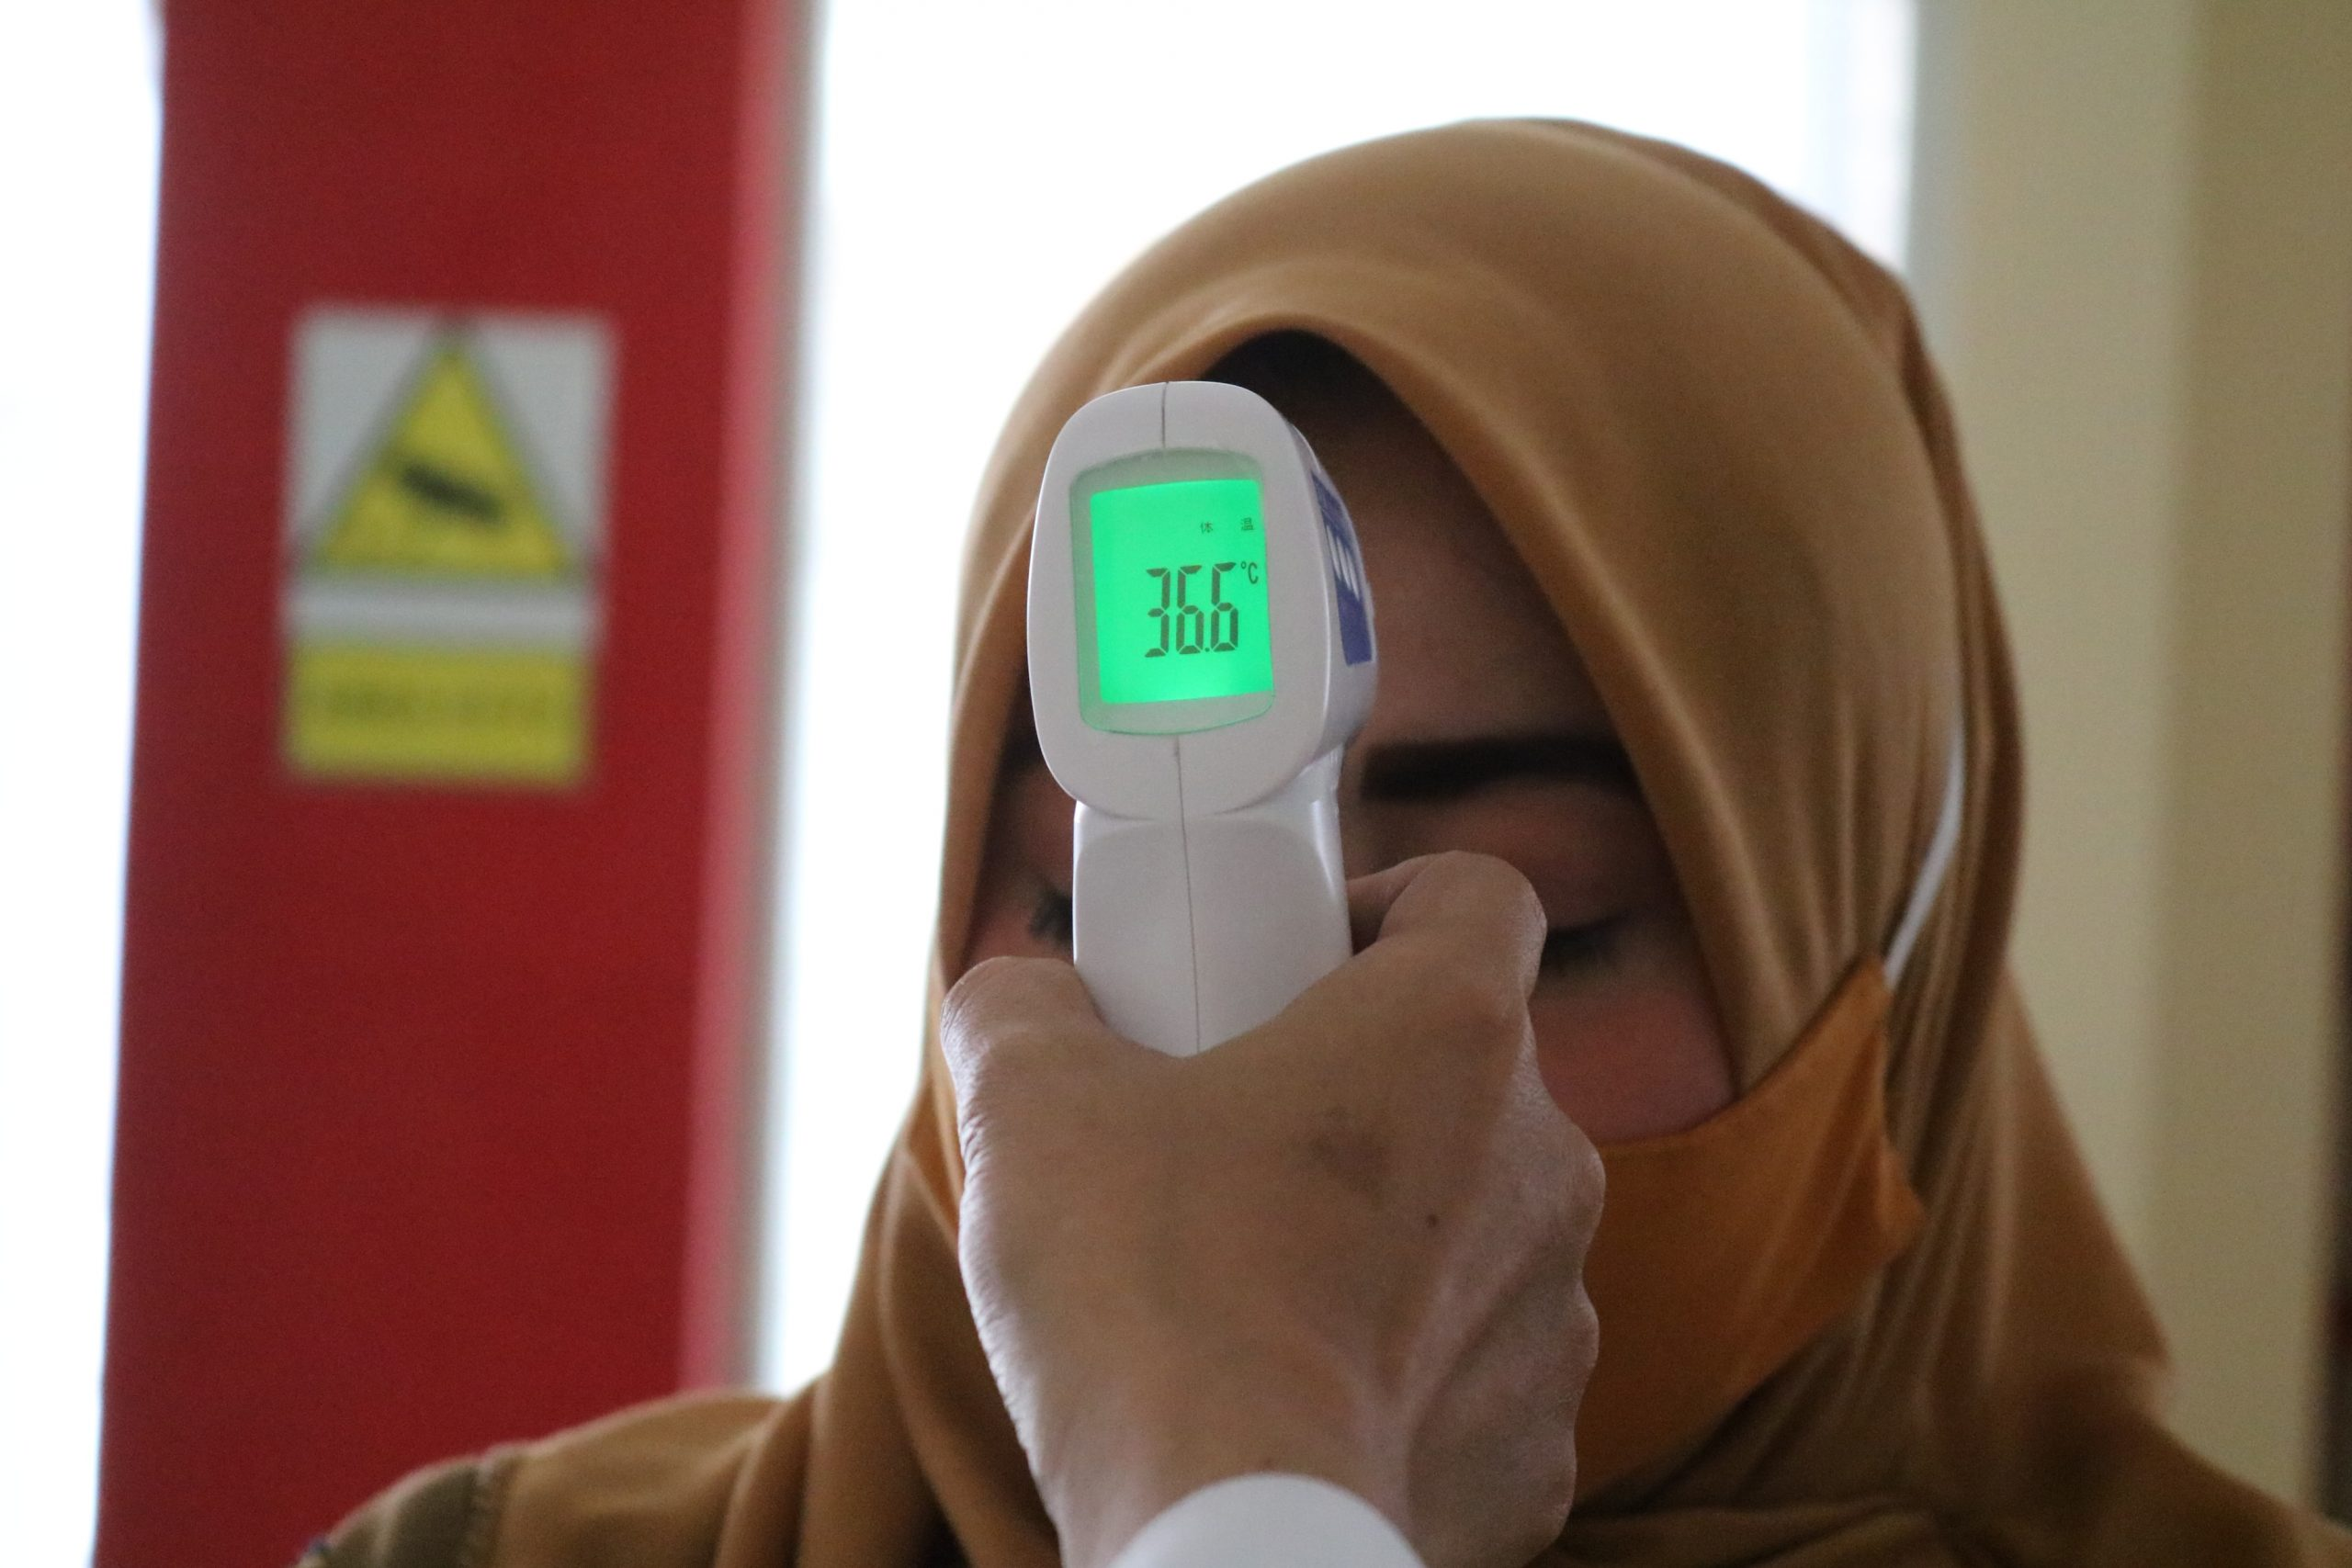 A woman wearing a light brown hijab and a face mask has a temperature taken.